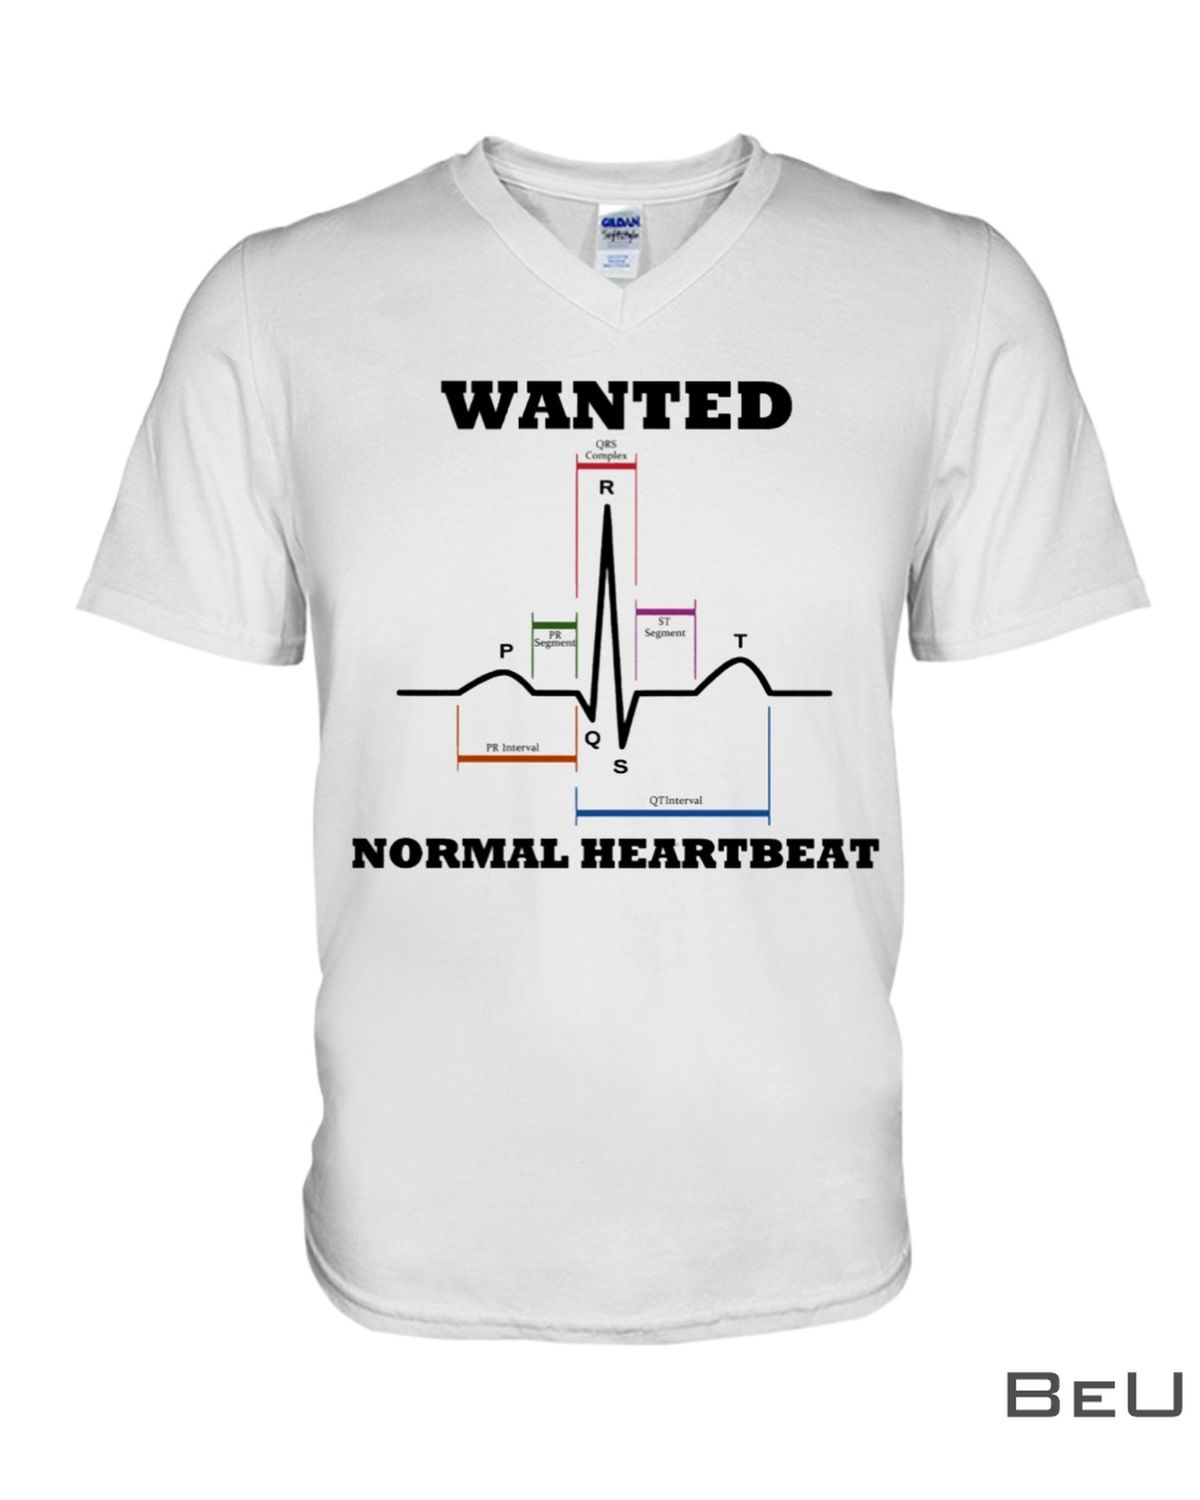 Cardiologist Wanted Normal Heartbeat Shirt x